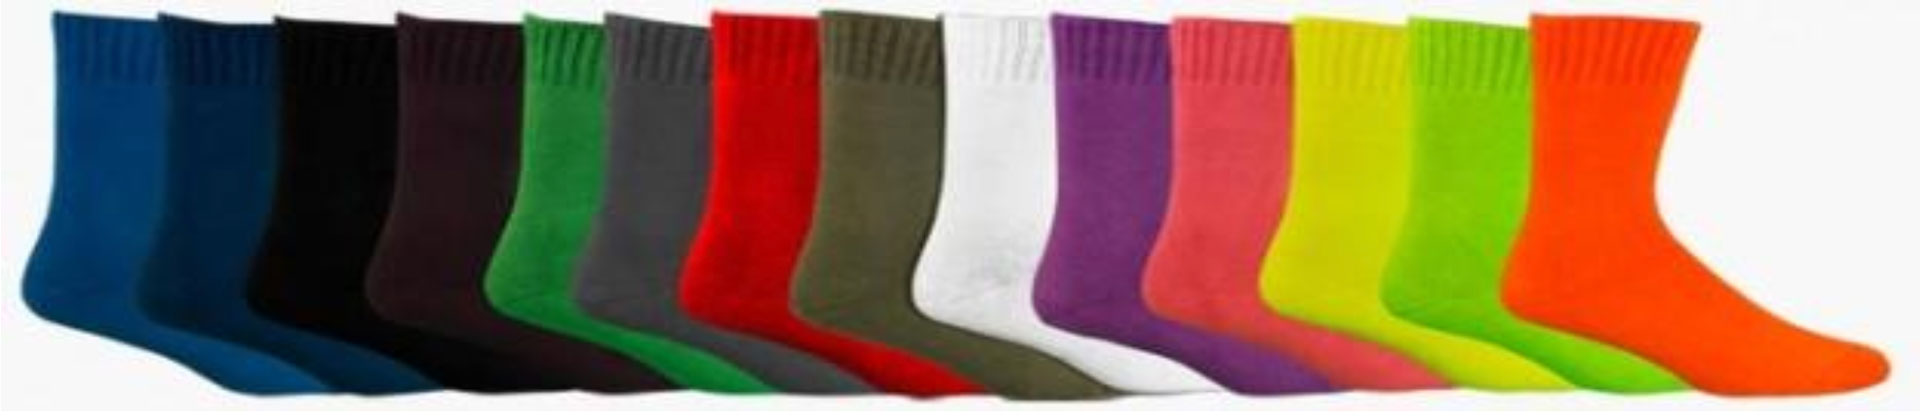 Colour chart of bamboo socks